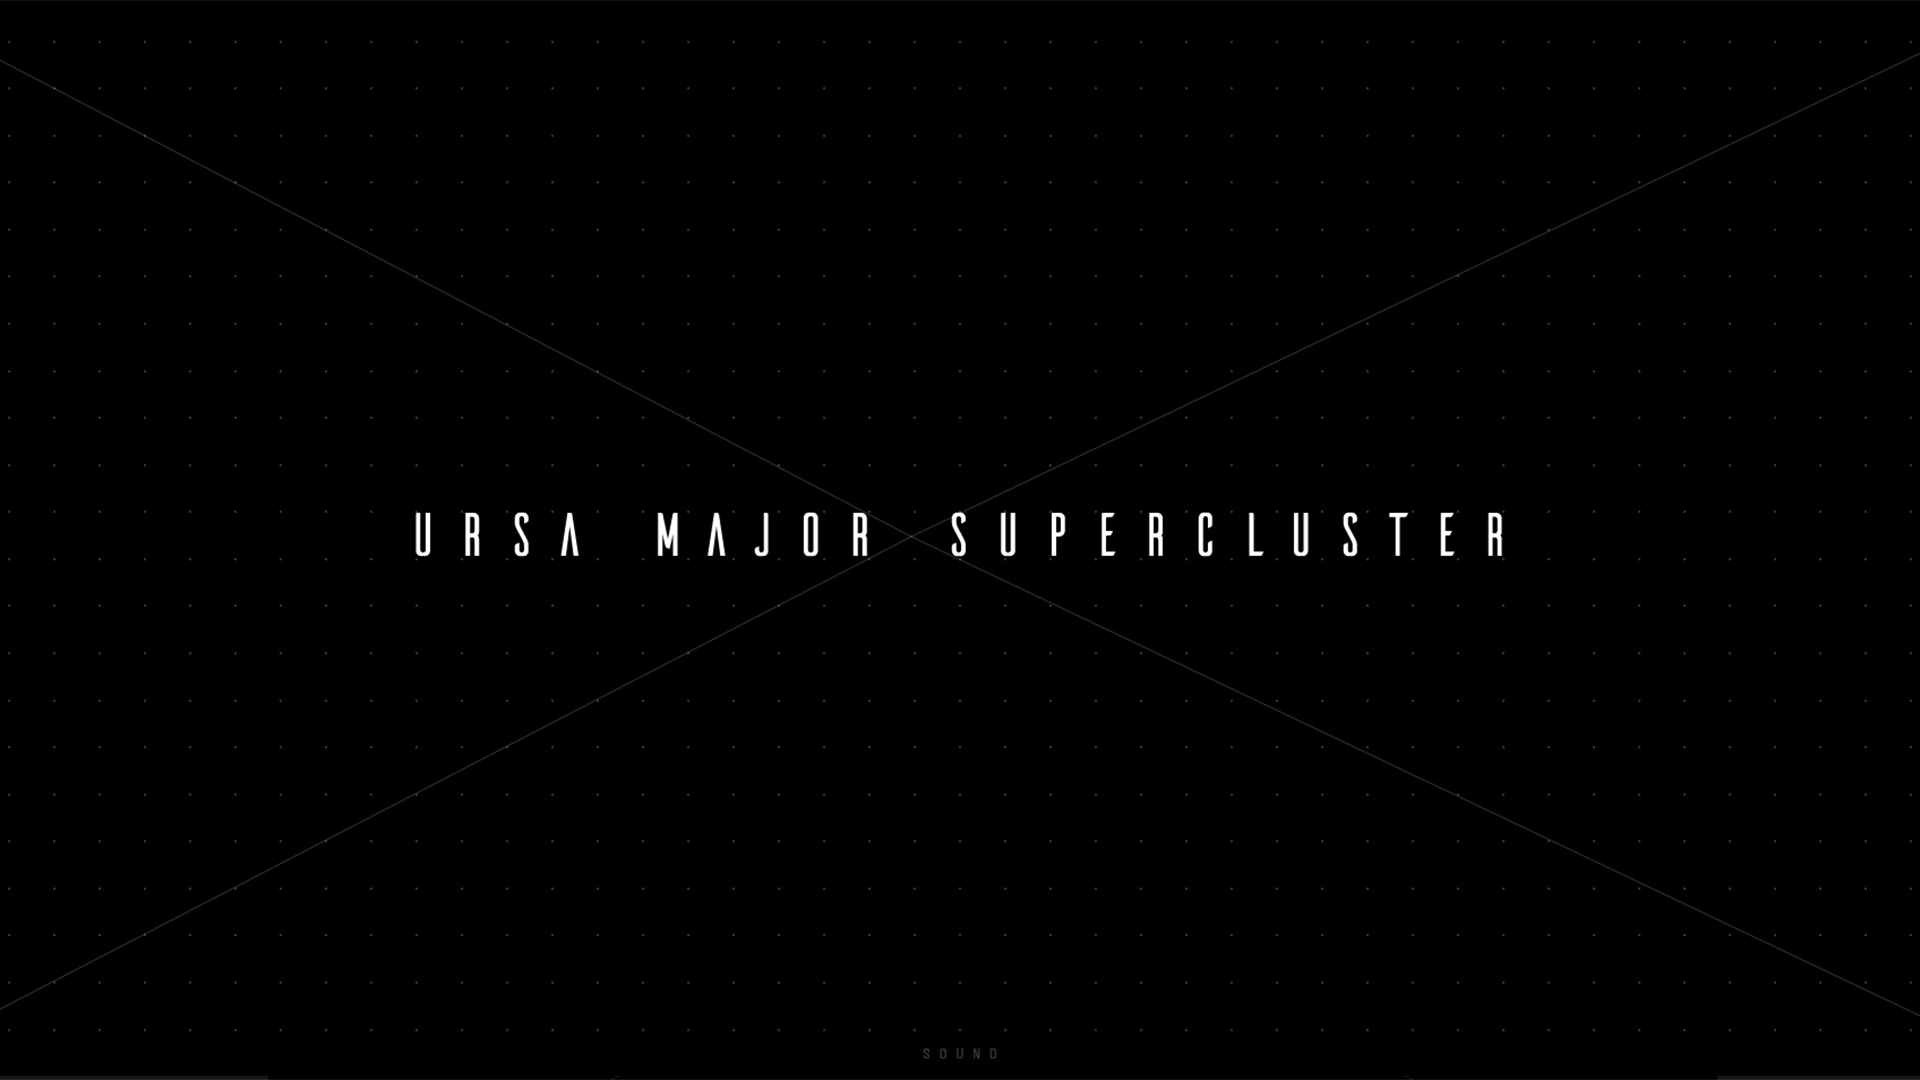 Case Study: Ursa Major Supercluster by Daniel Spatzek